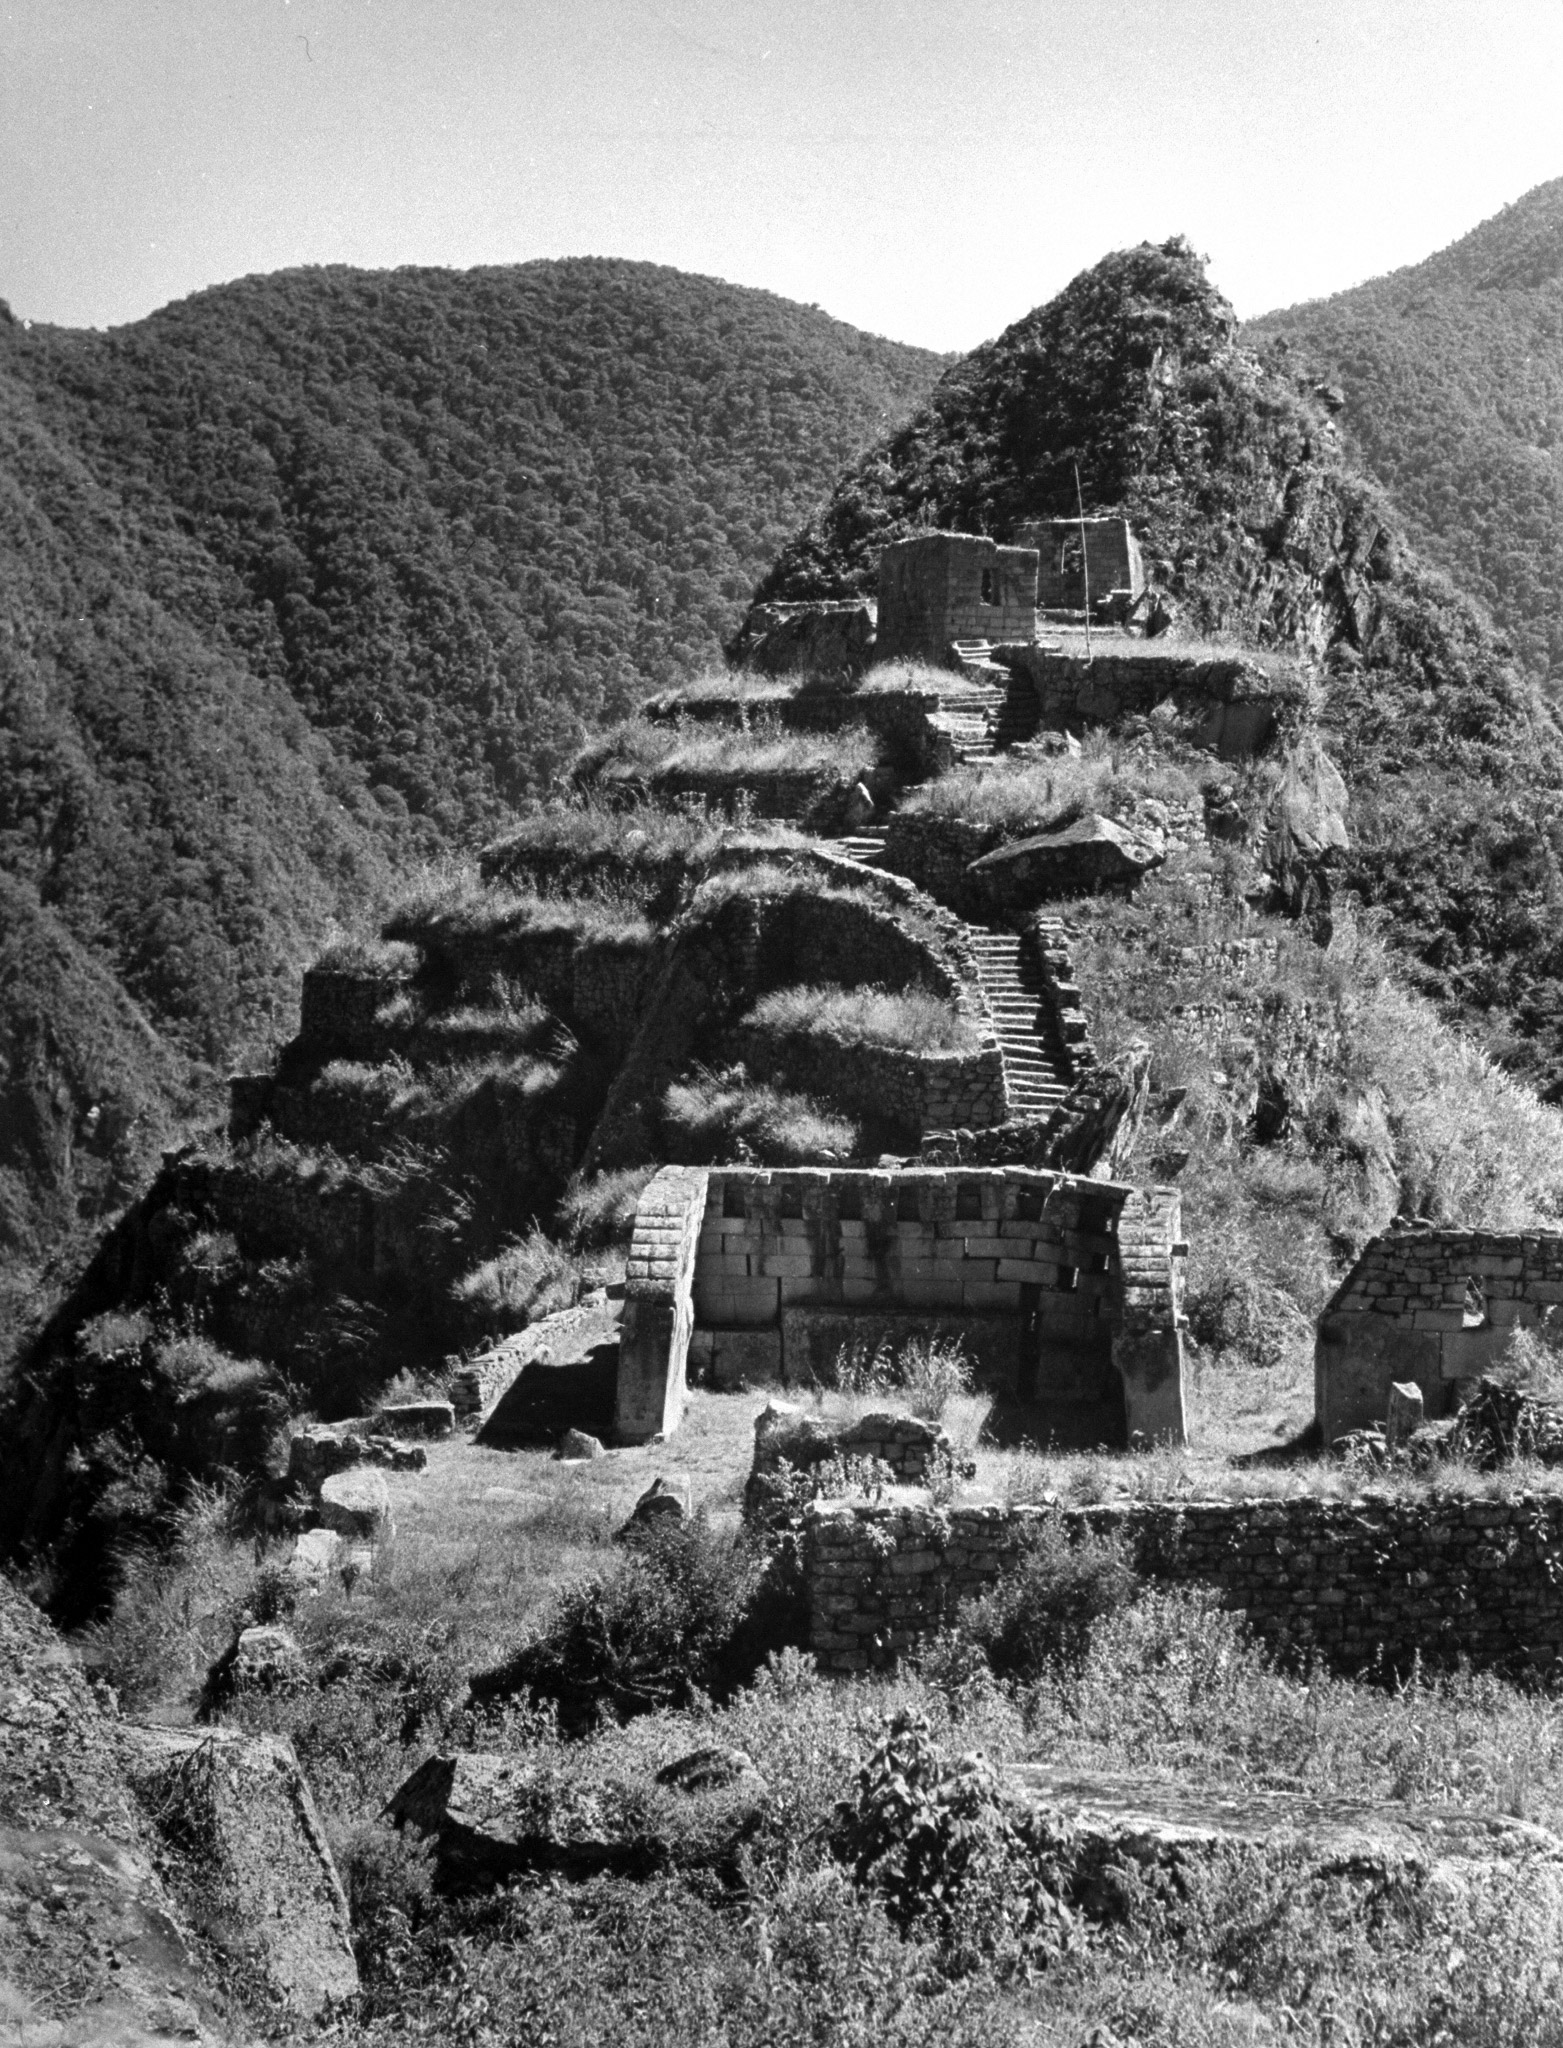 A view showing the temple with the altar. Partway up the hill is the sundial.